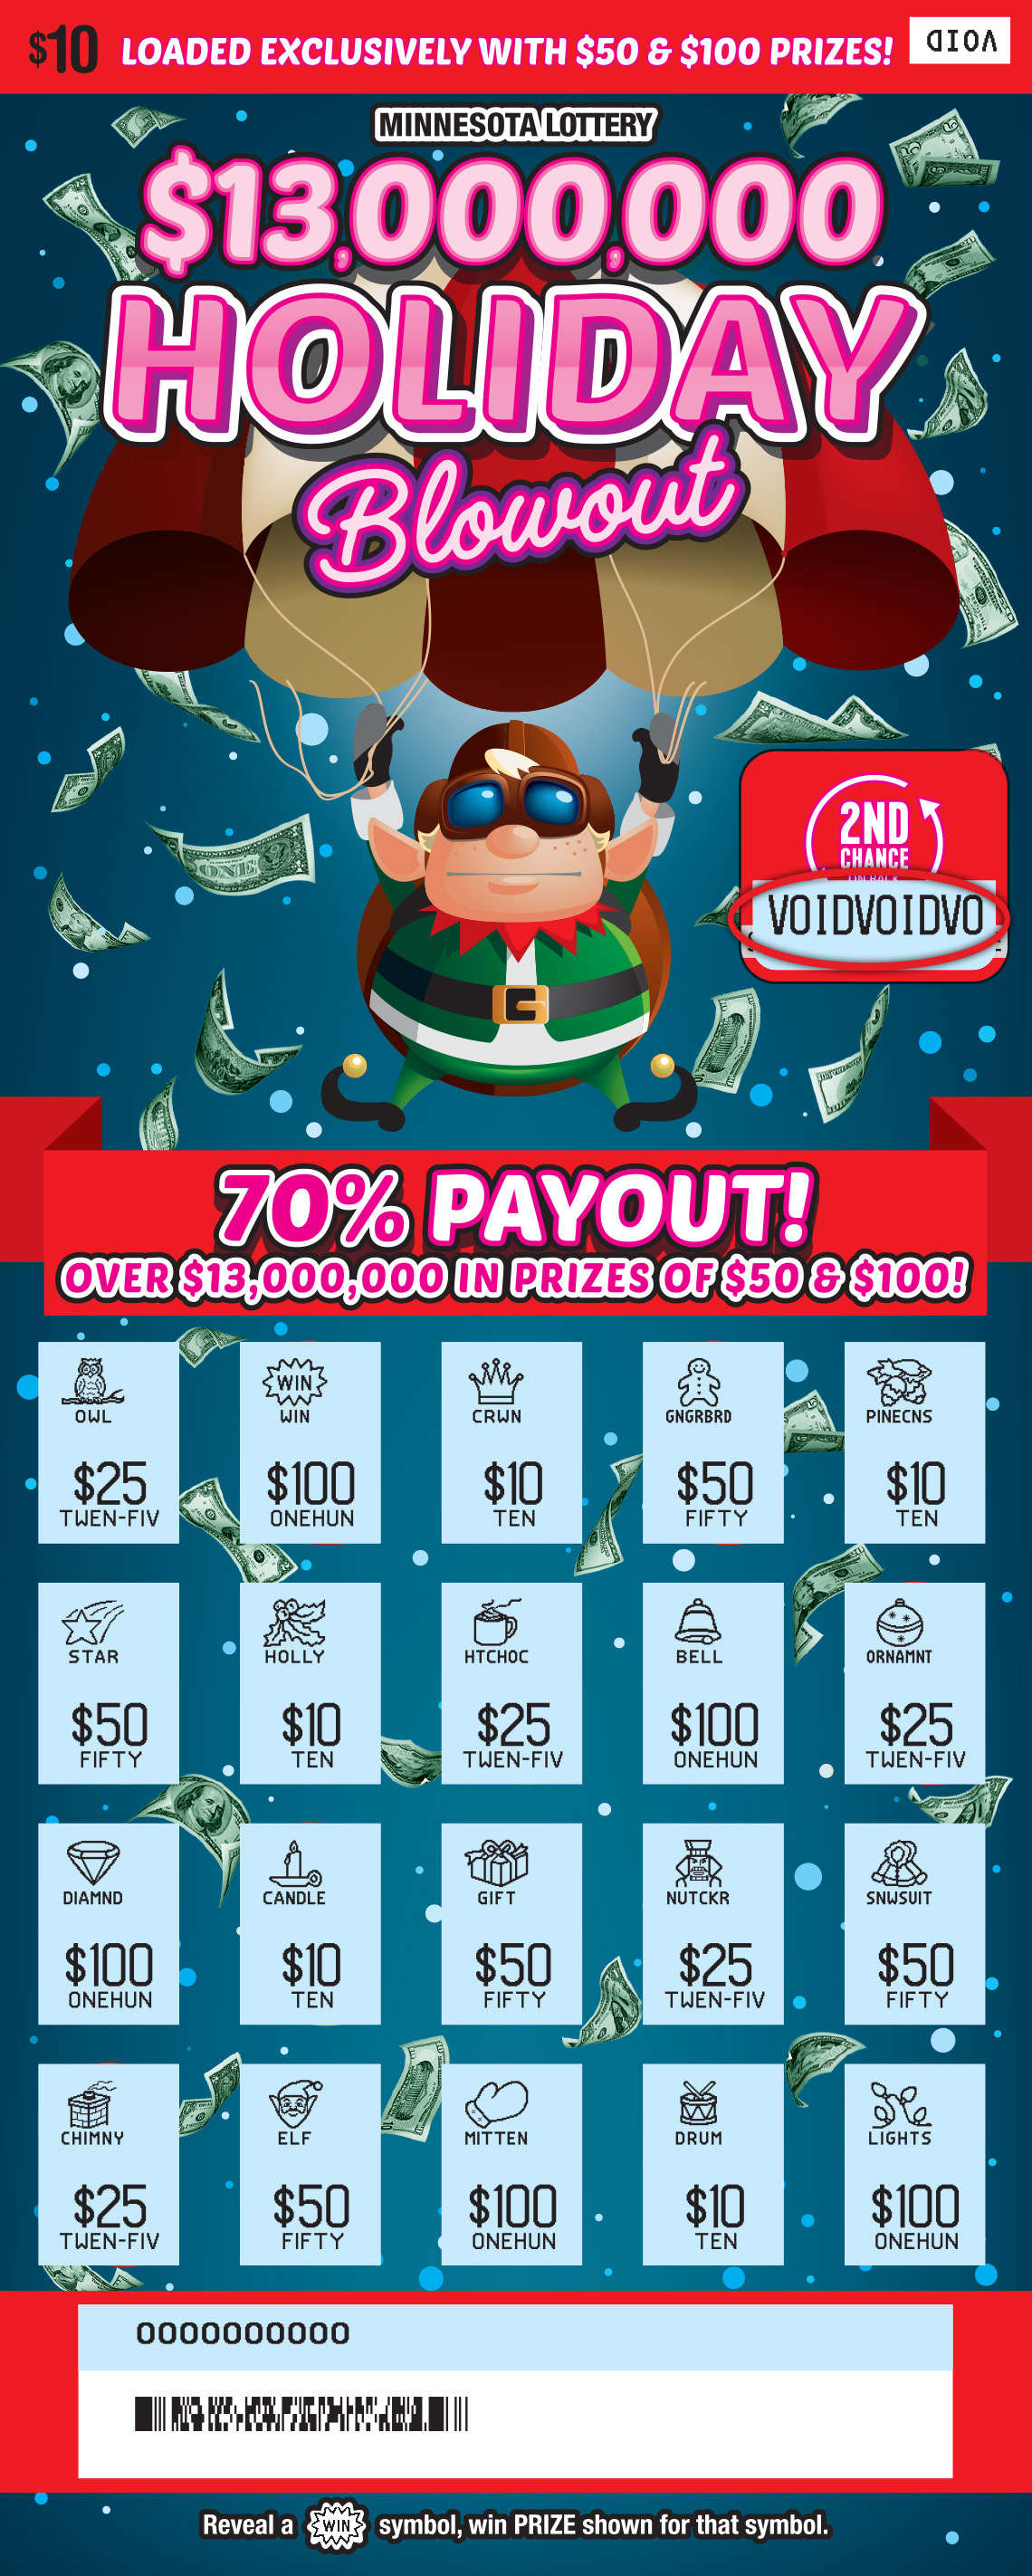 Holiday Blowout Val MN Lottery 1